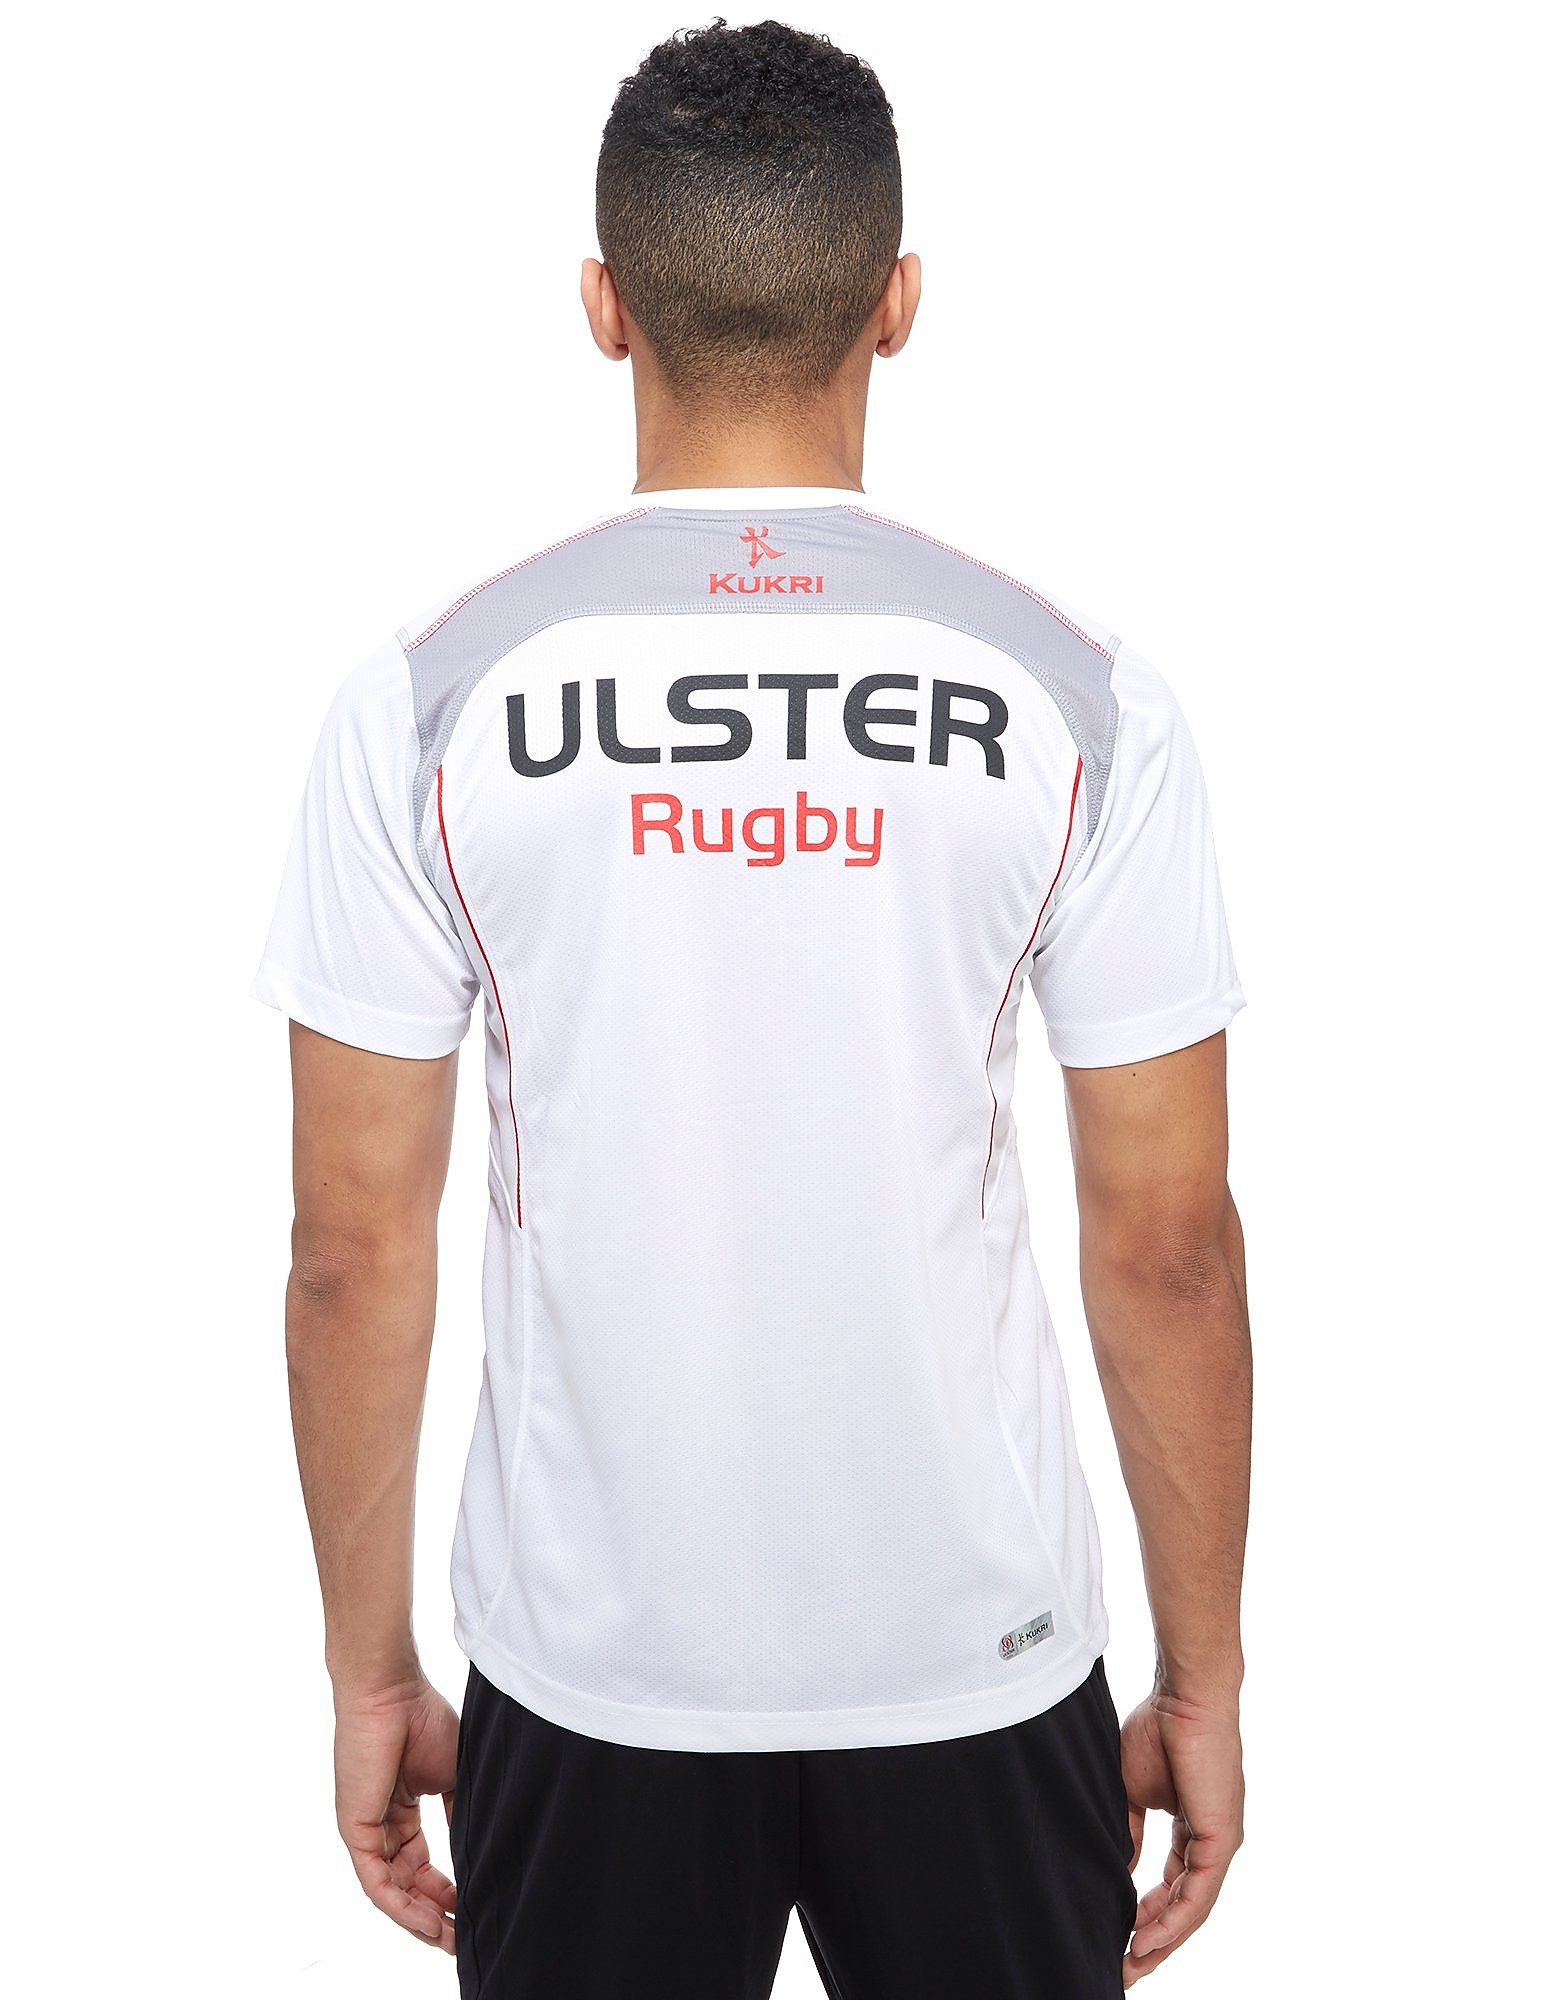 Kukri Ulster 2017/18 Performance Rugby Training T-Shirt